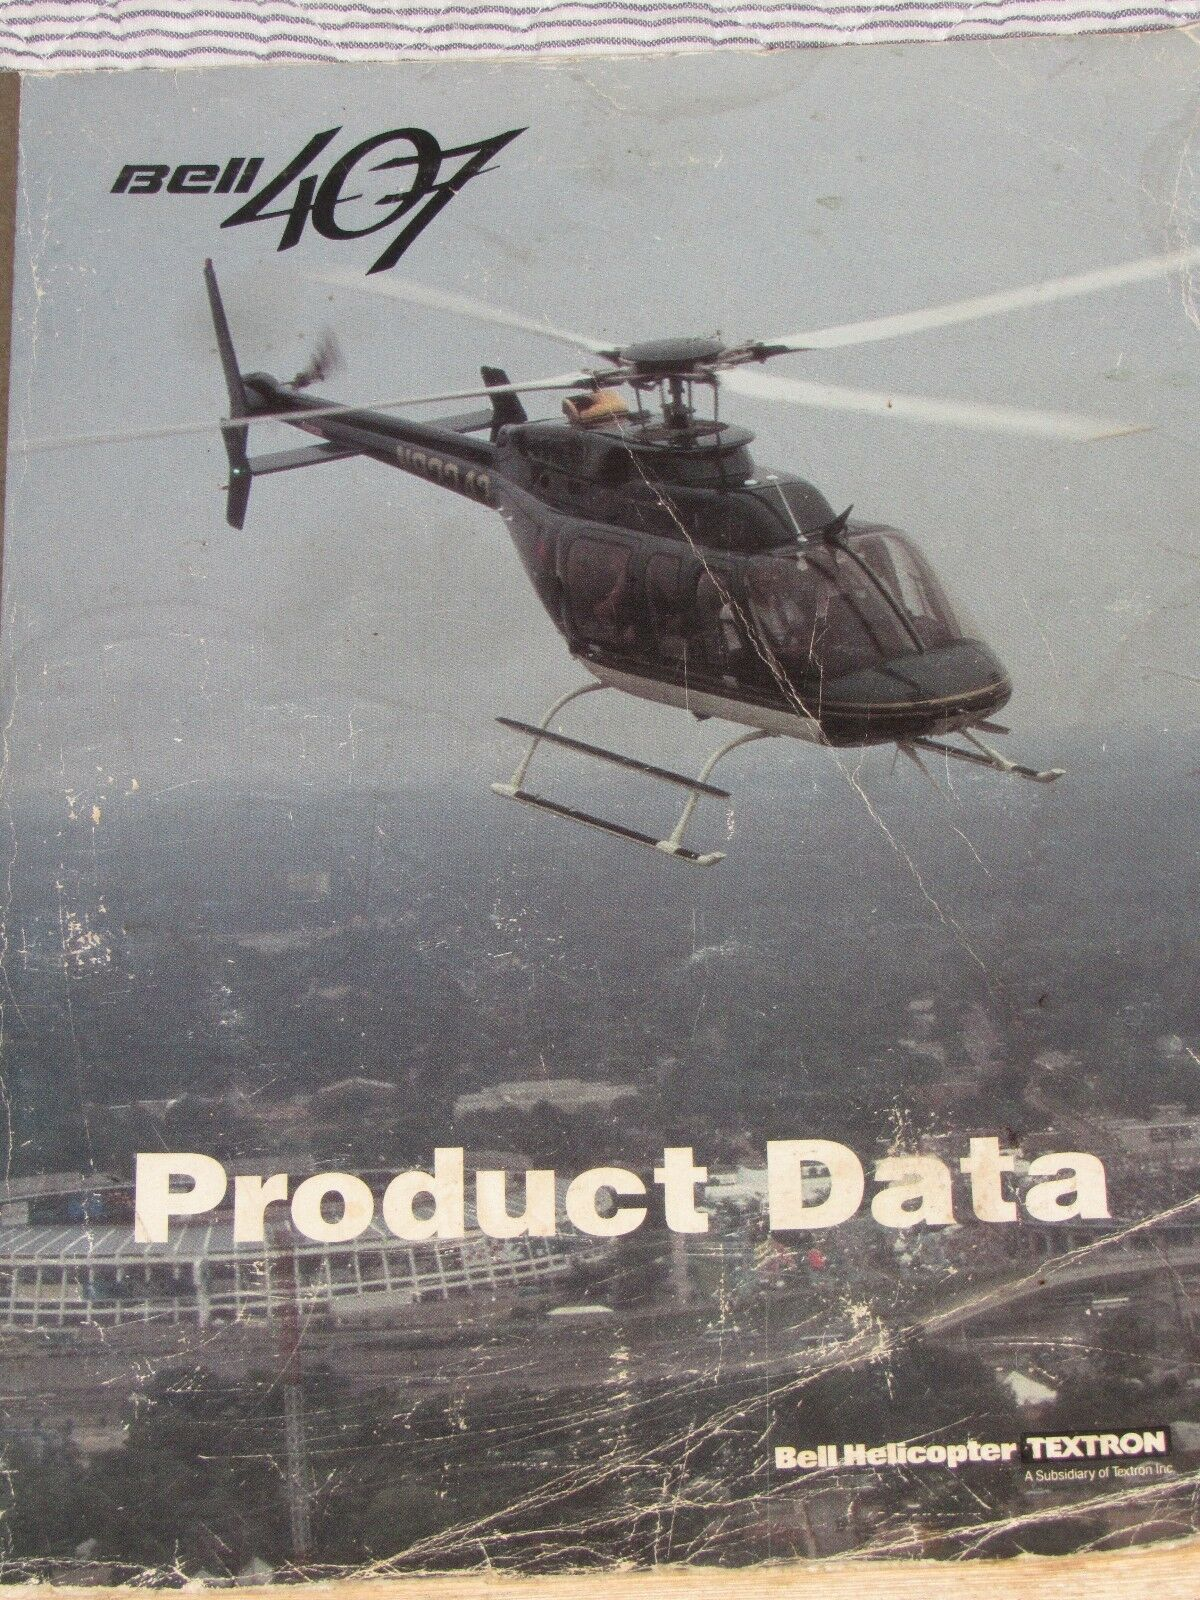 Bell 407 Helicopter Product Data Manual